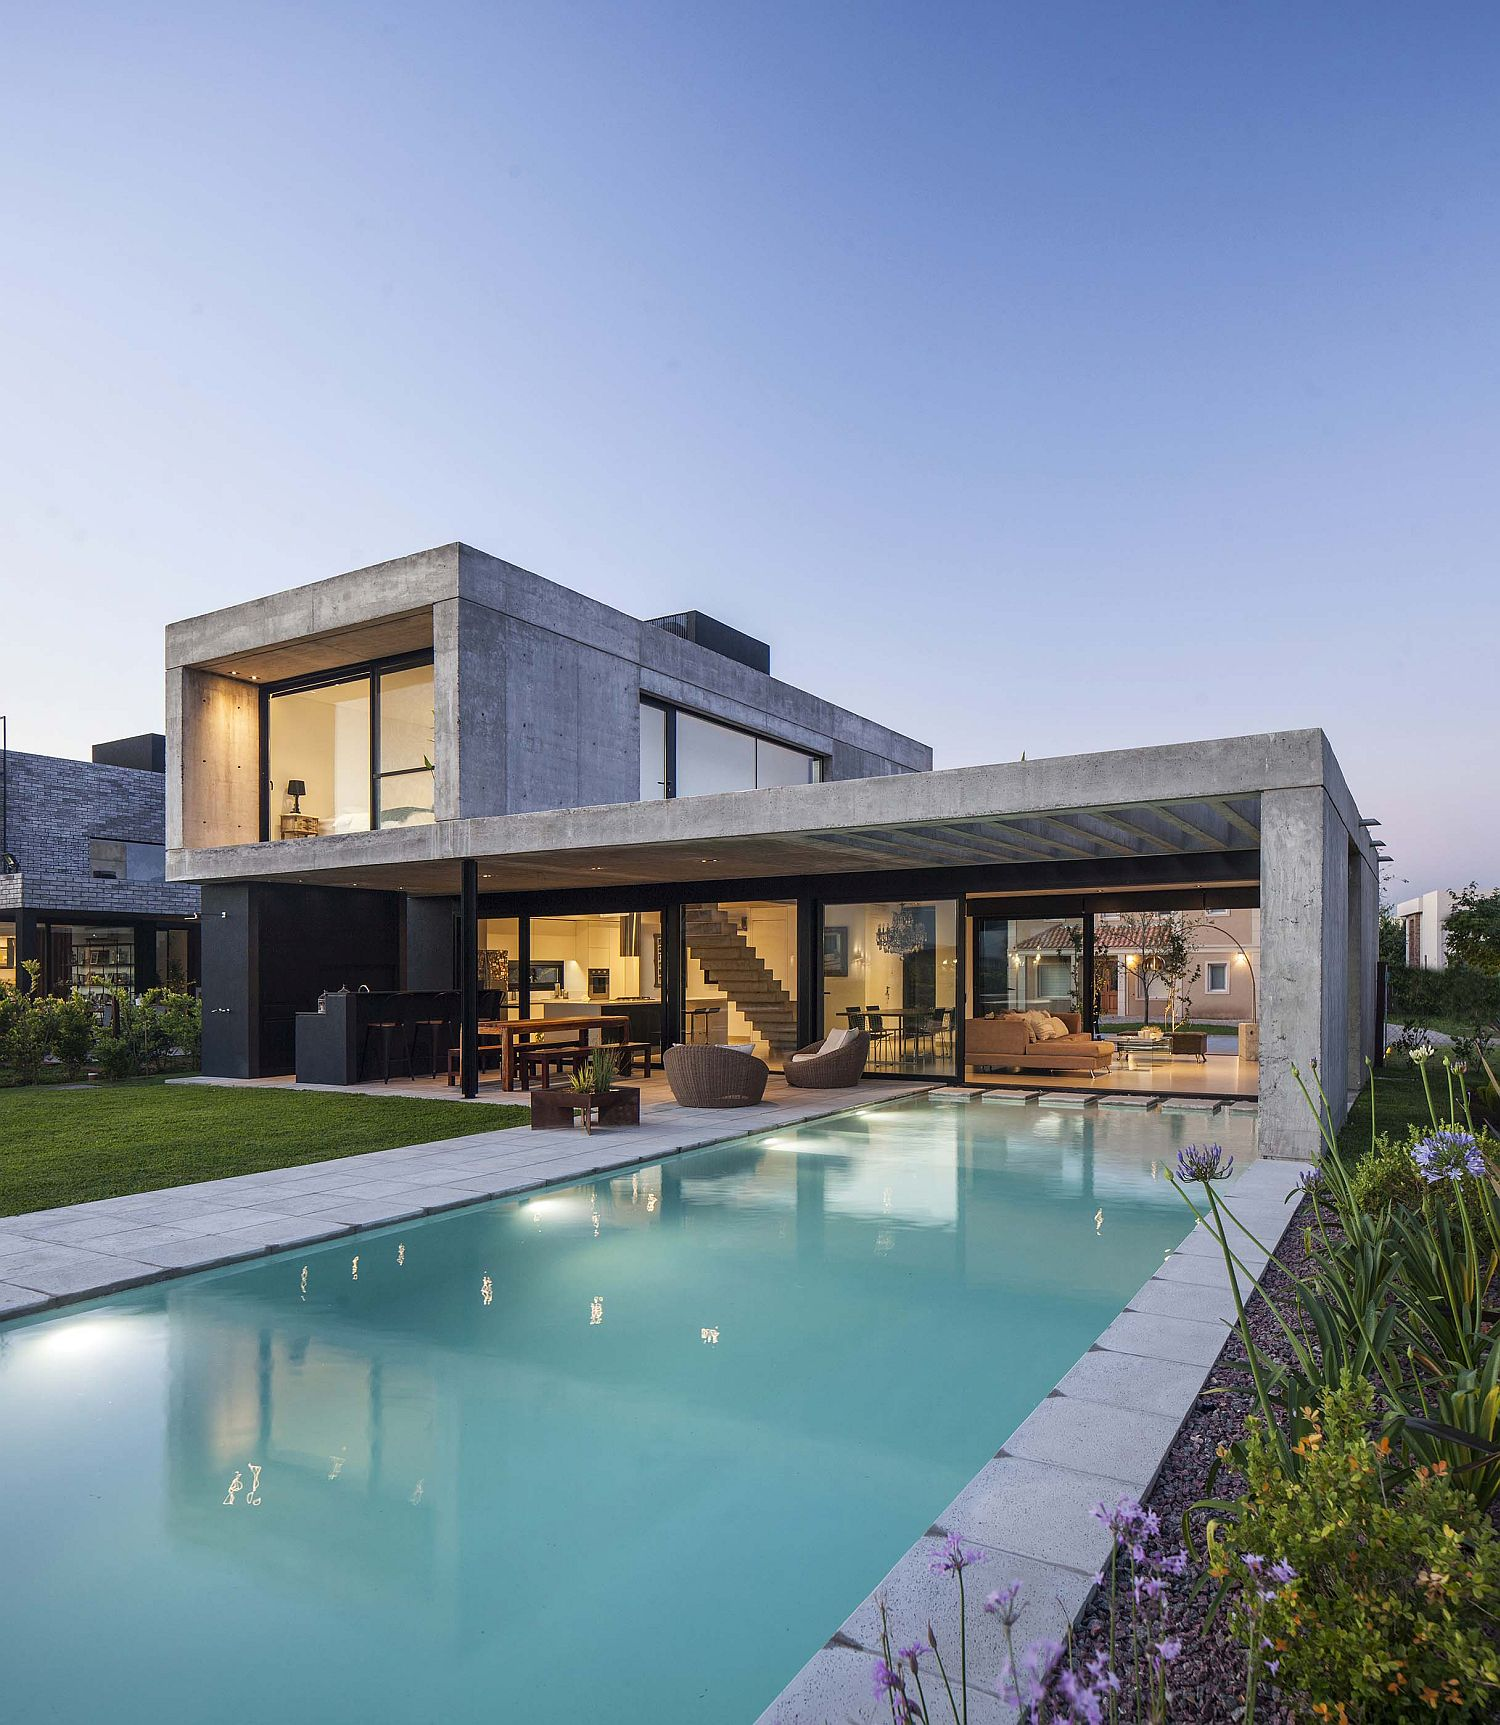 Expansive-pool-becomes-a-natural-extension-of-the-contemporary-home-26654